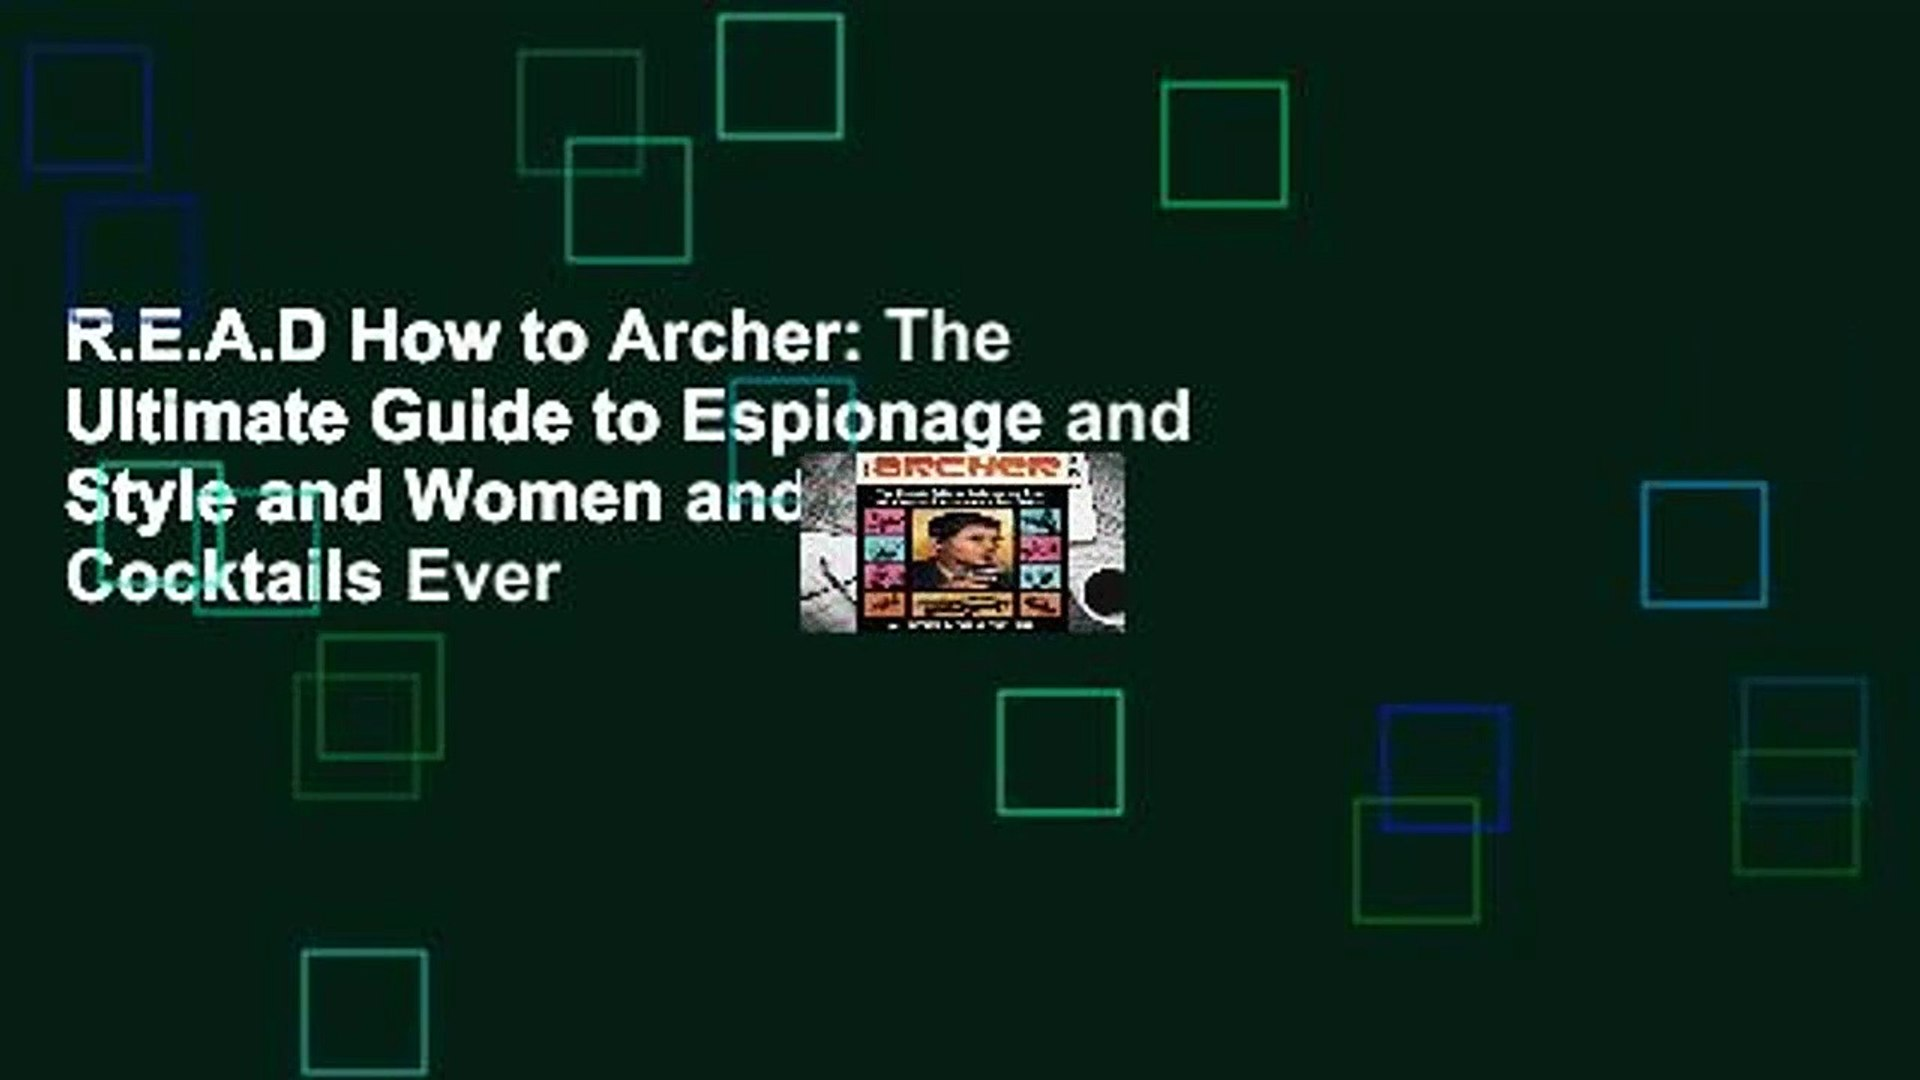 R.E.A.D How to Archer: The Ultimate Guide to Espionage and Style and Women and Also Cocktails Ever